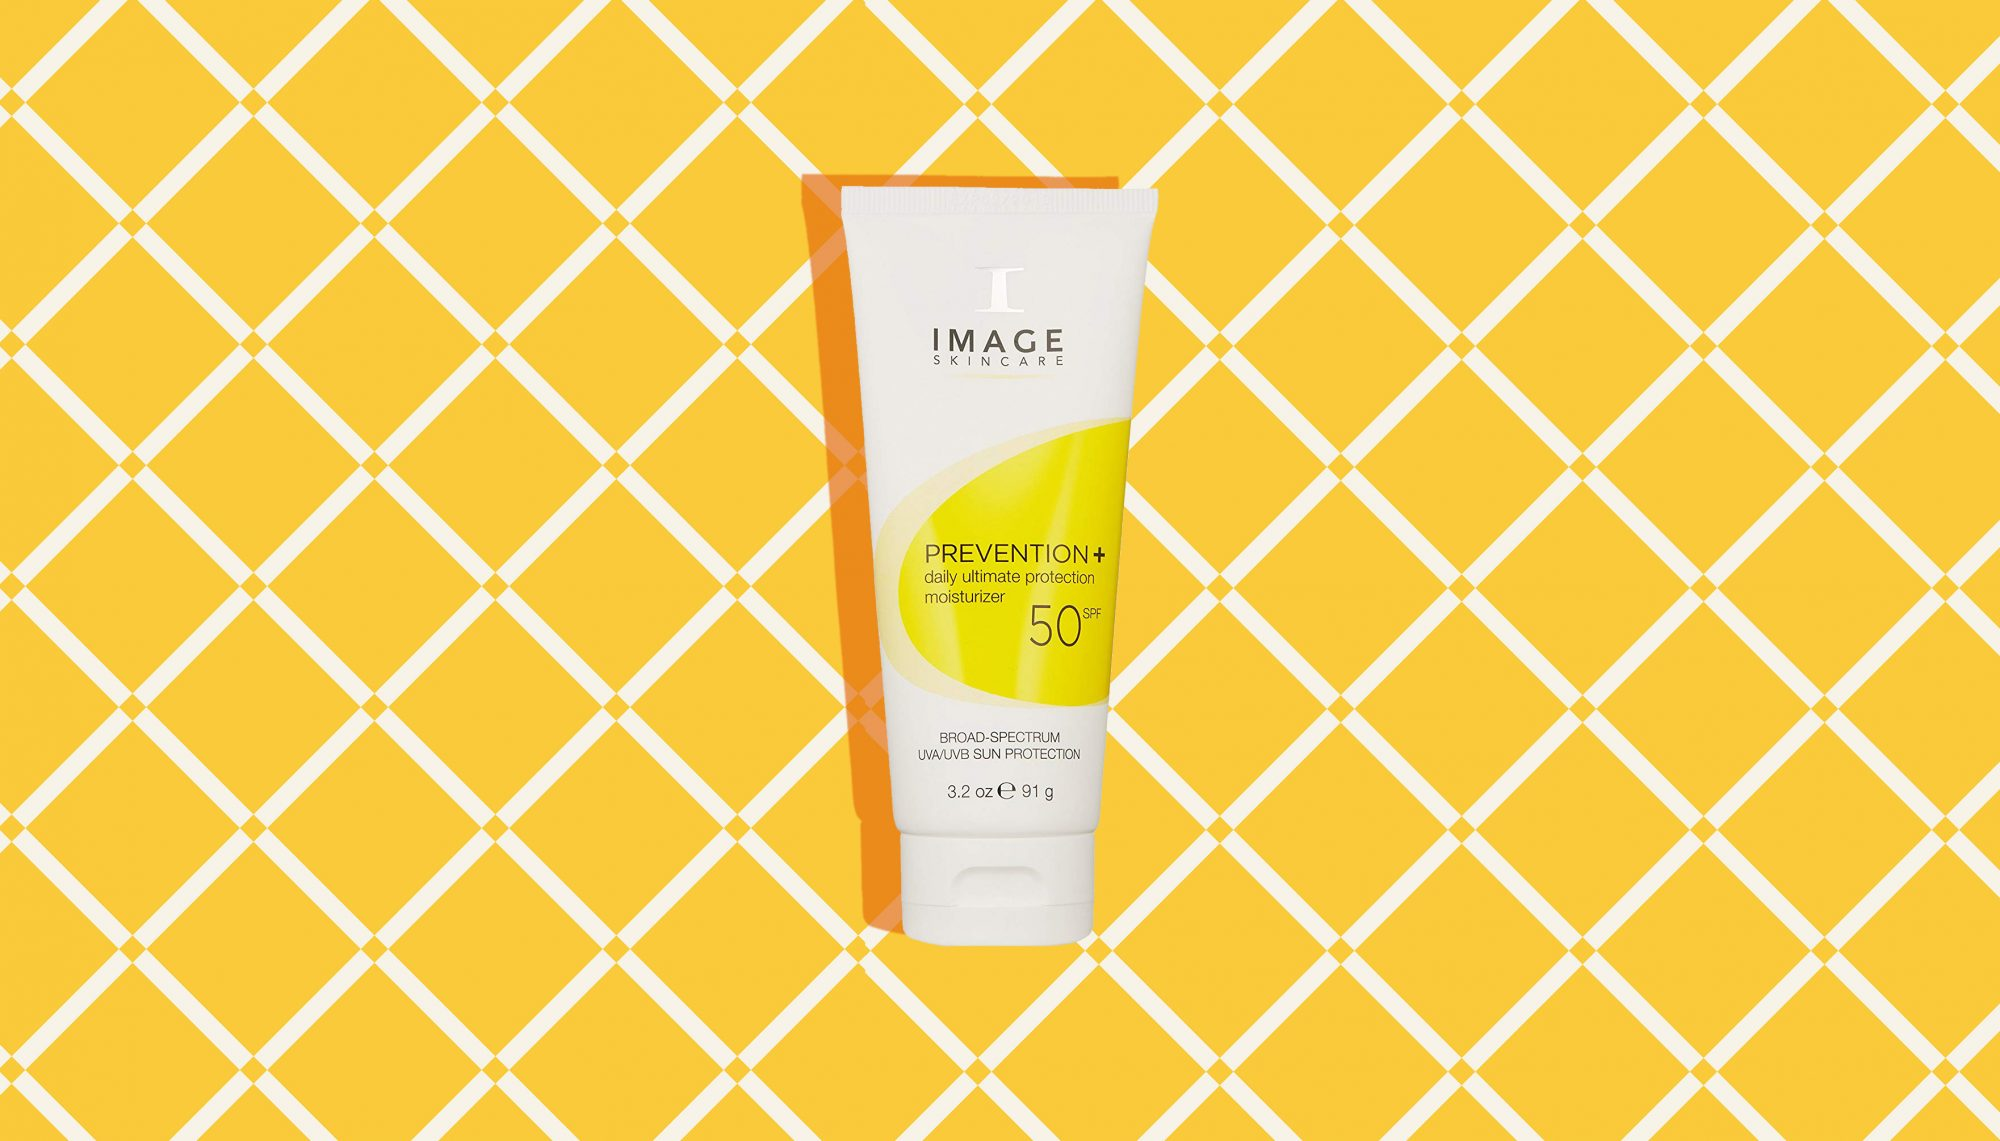 image-sunscreen